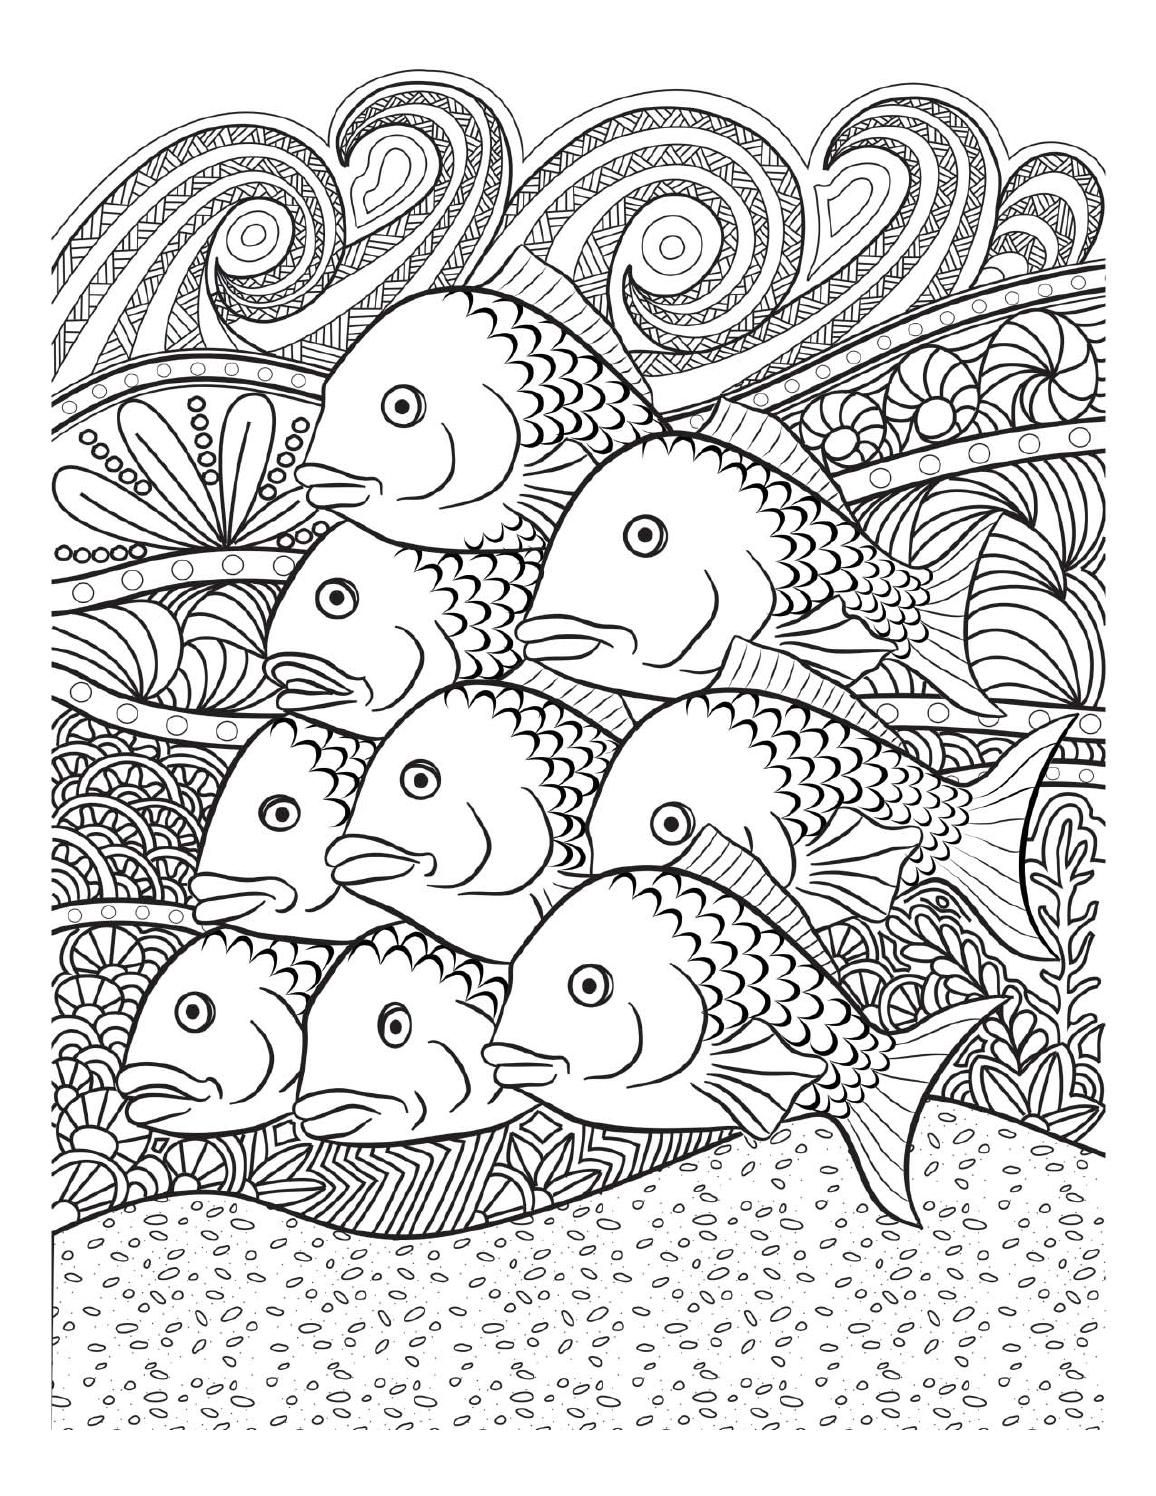 Stress relief coloring pages - Doodles Oceana Adult Coloring Book Twenty Creative And Stress Relieving Coloring Pages